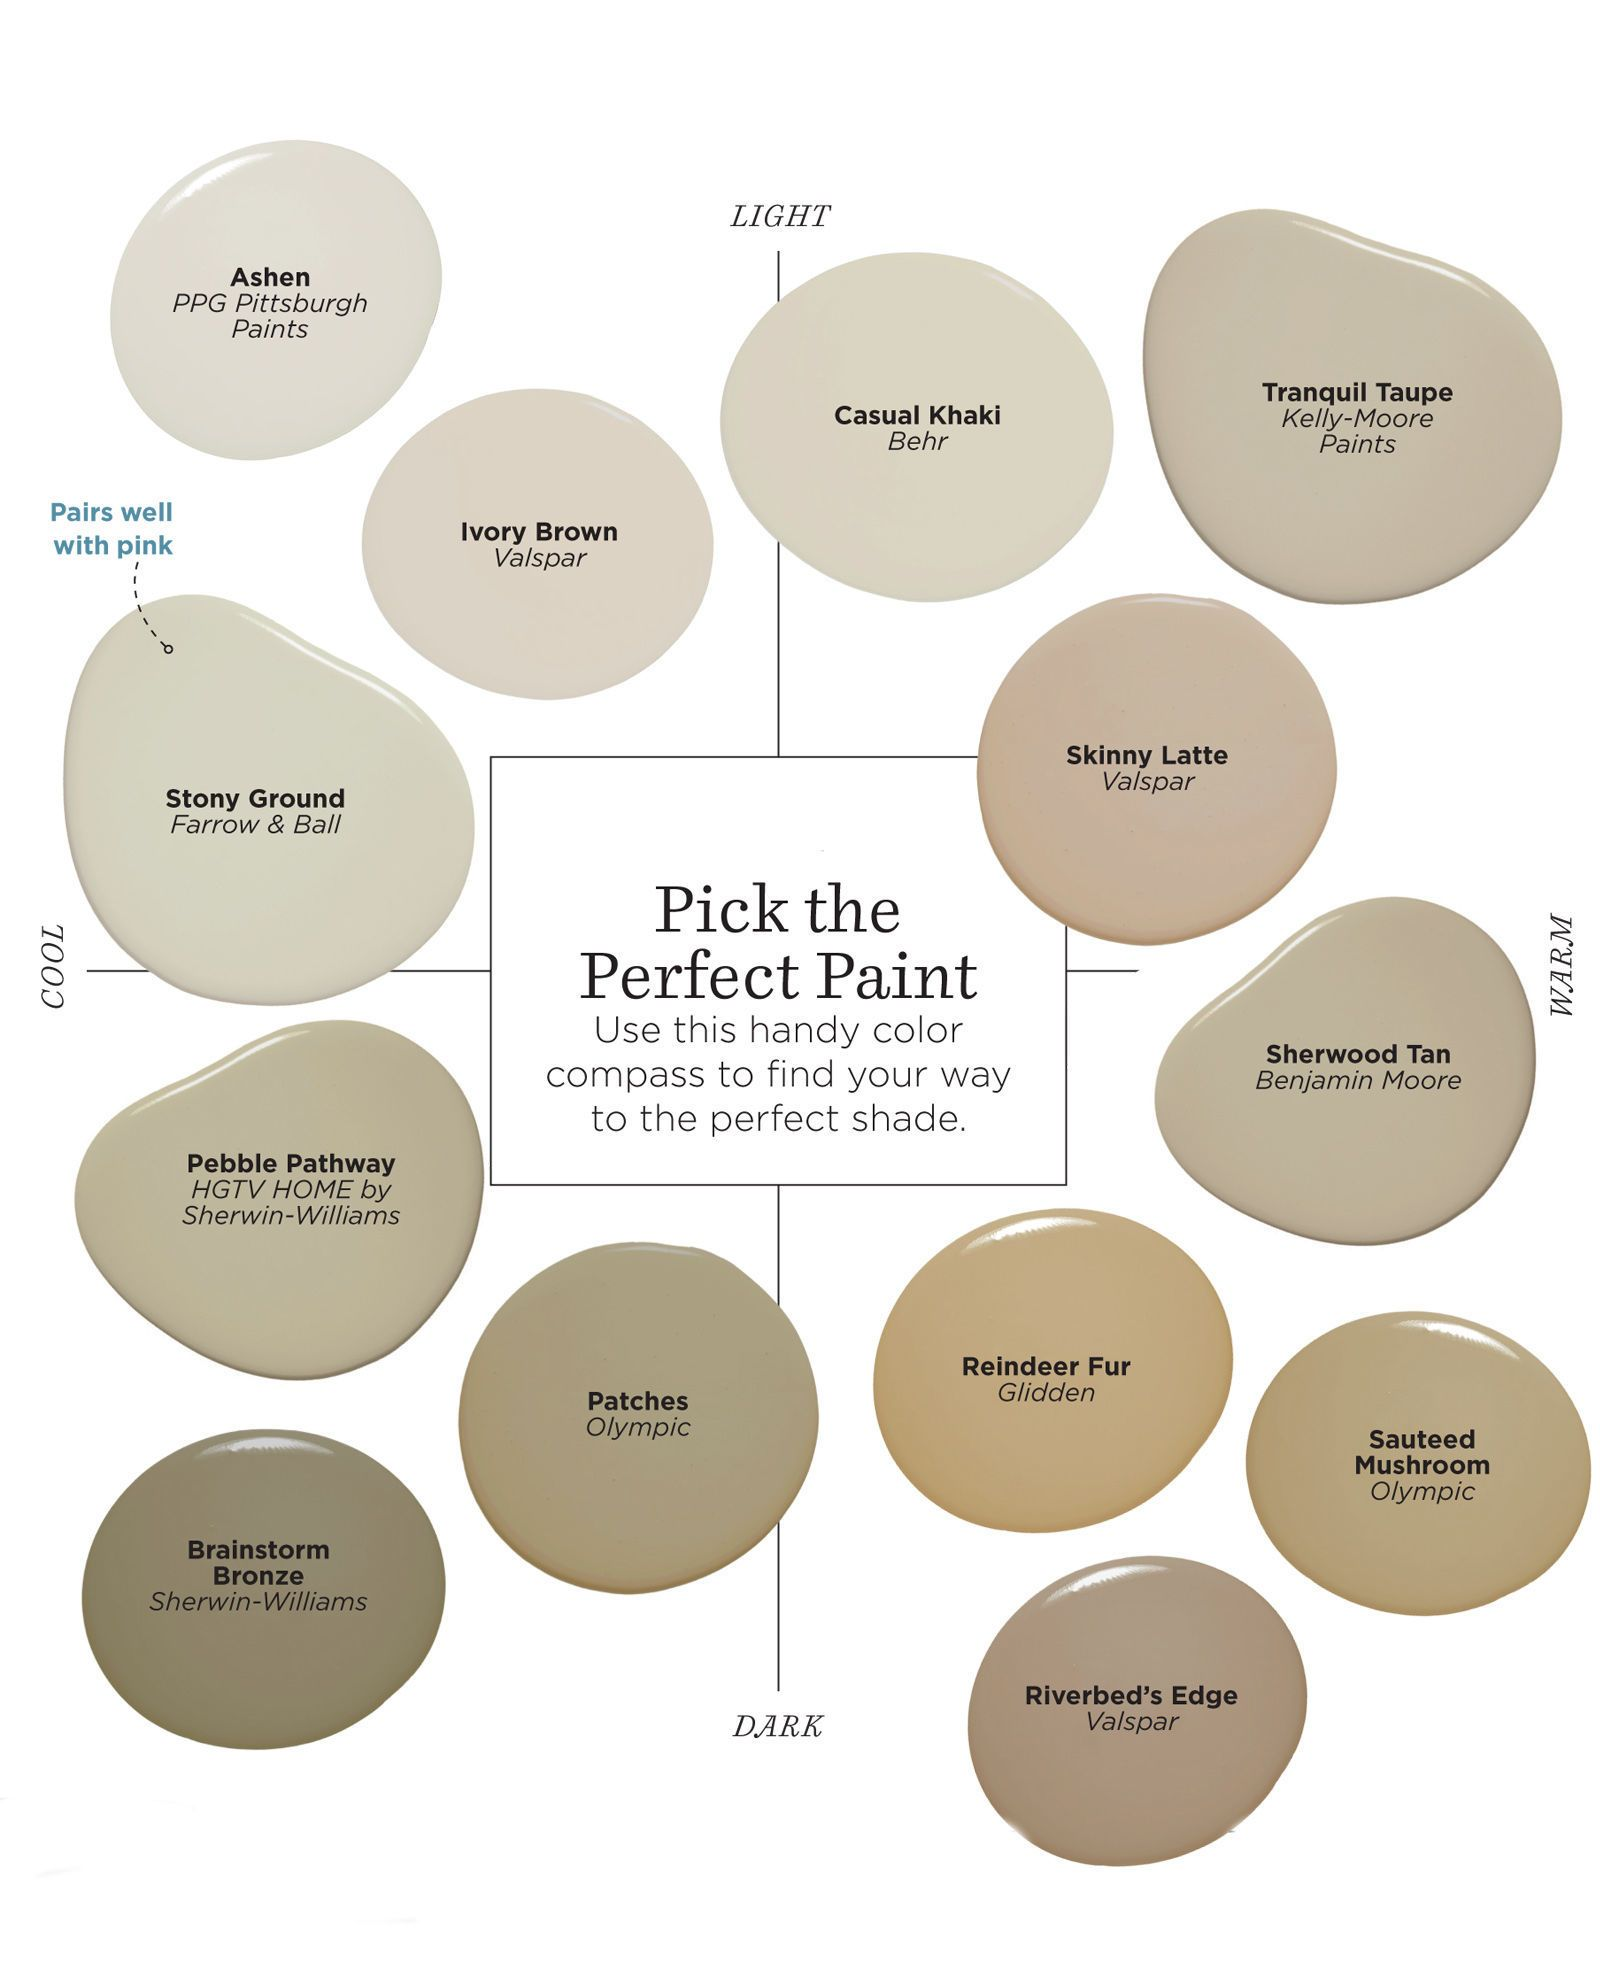 Forget taupeua new color is taking over homes and pinterest in